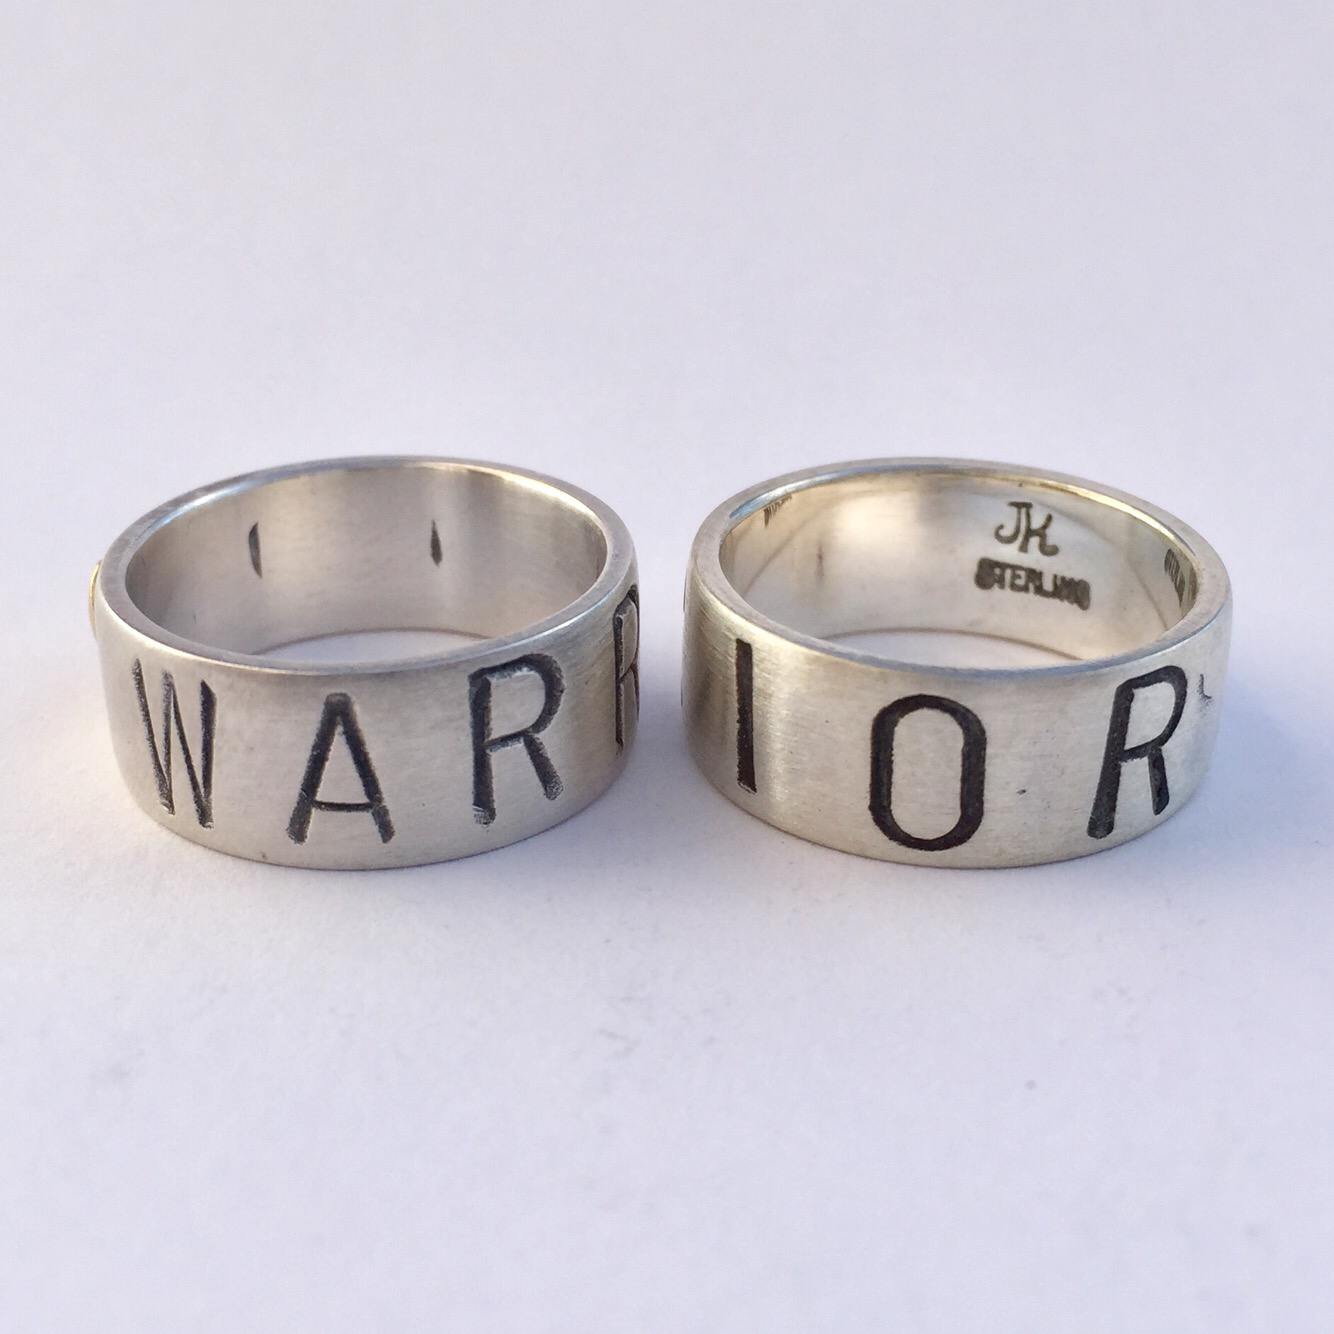 Warrior Ring Sterling Silver 8mm (wide) band